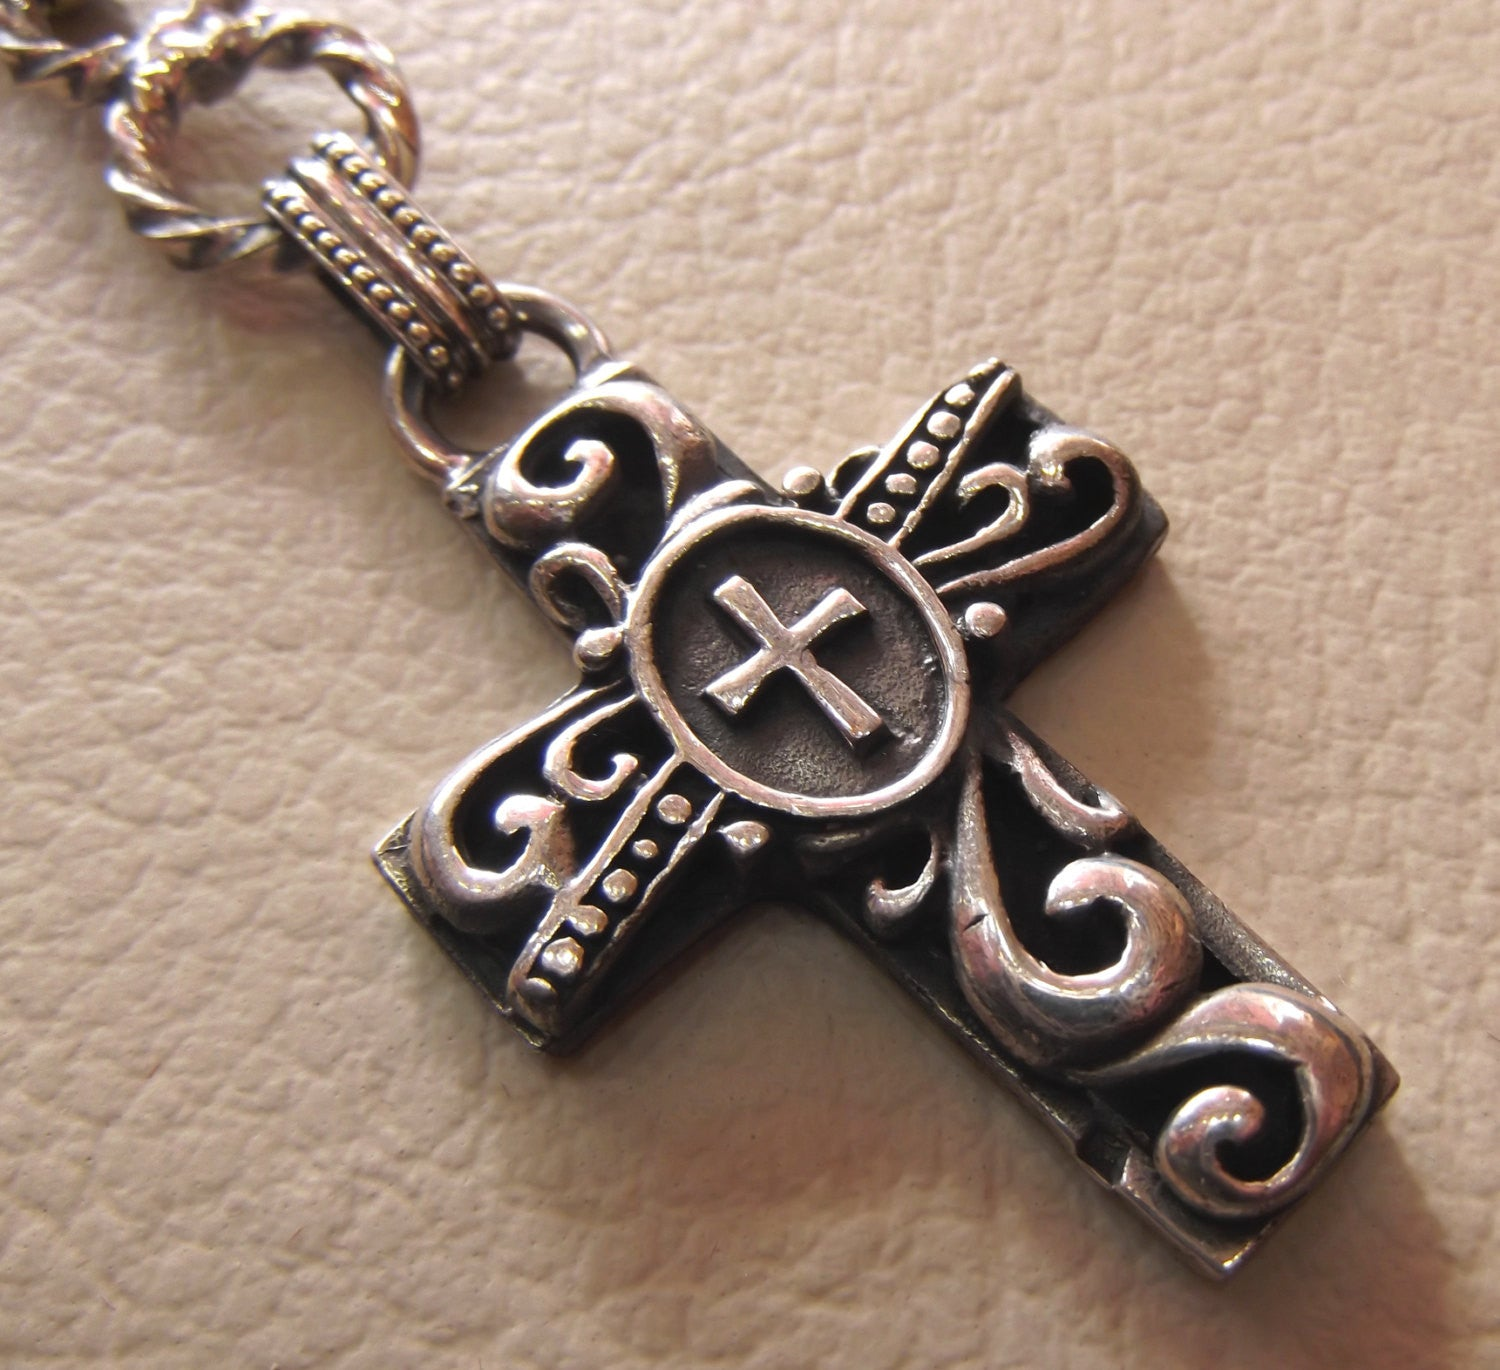 cross sterling silver 925 key chain holder heavy christian cross christianity middle eastern jewelry  vintage style handmade